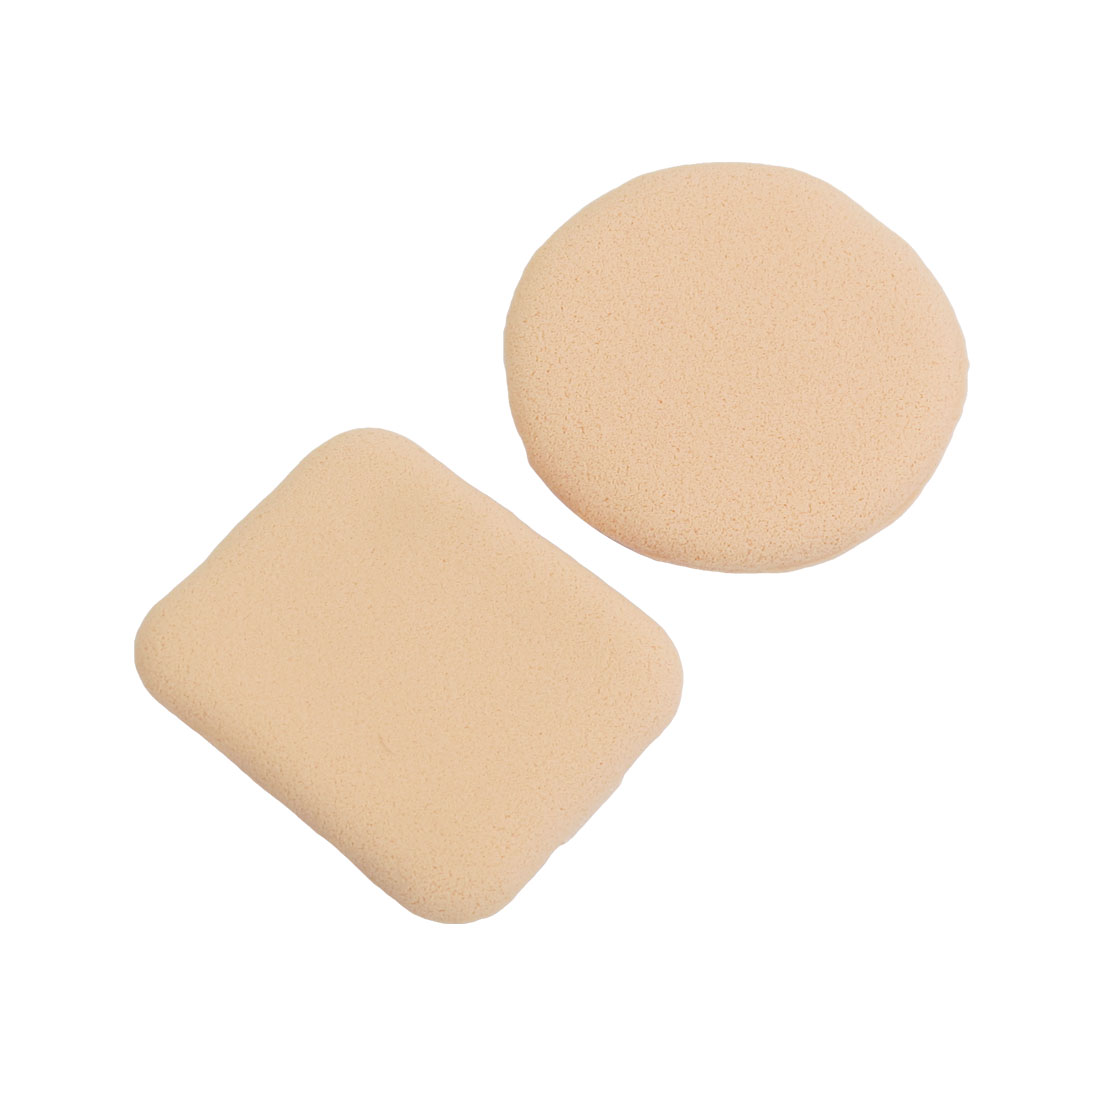 Pair Round Rectangle Shaped Sponge Makeup Facial Powder Puff Beige